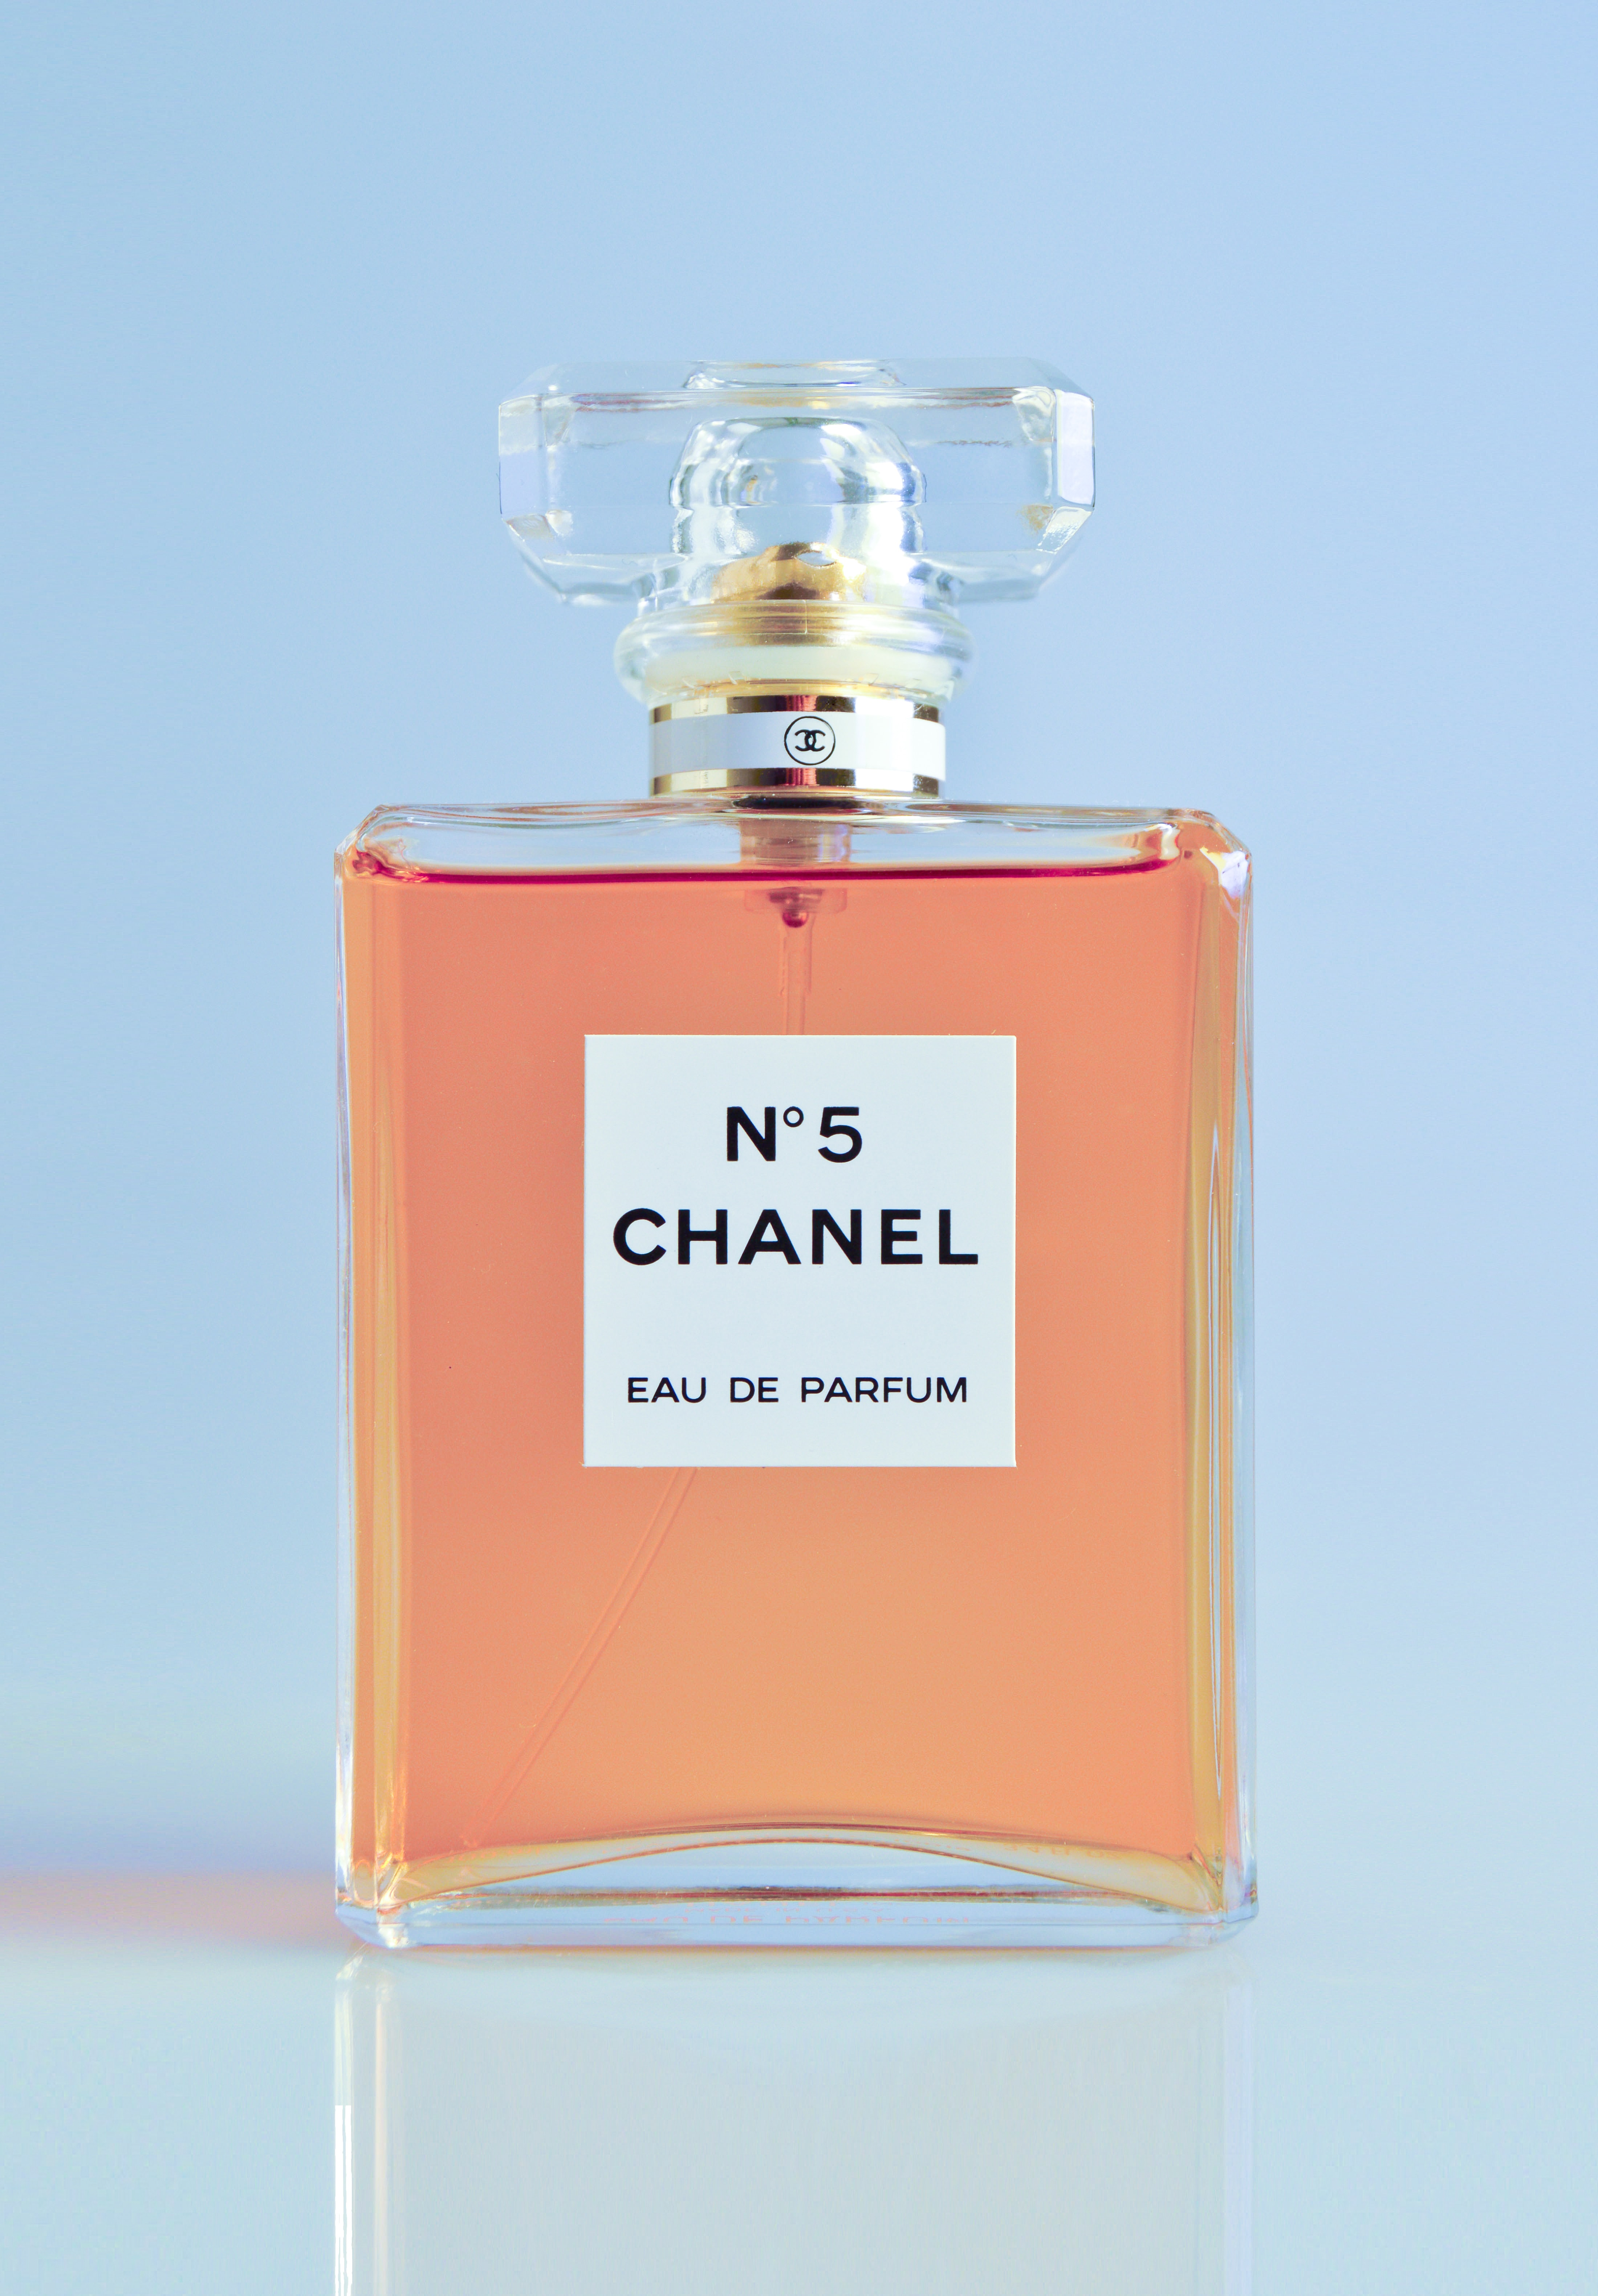 N5 Chanel eau de parfum spray bottle